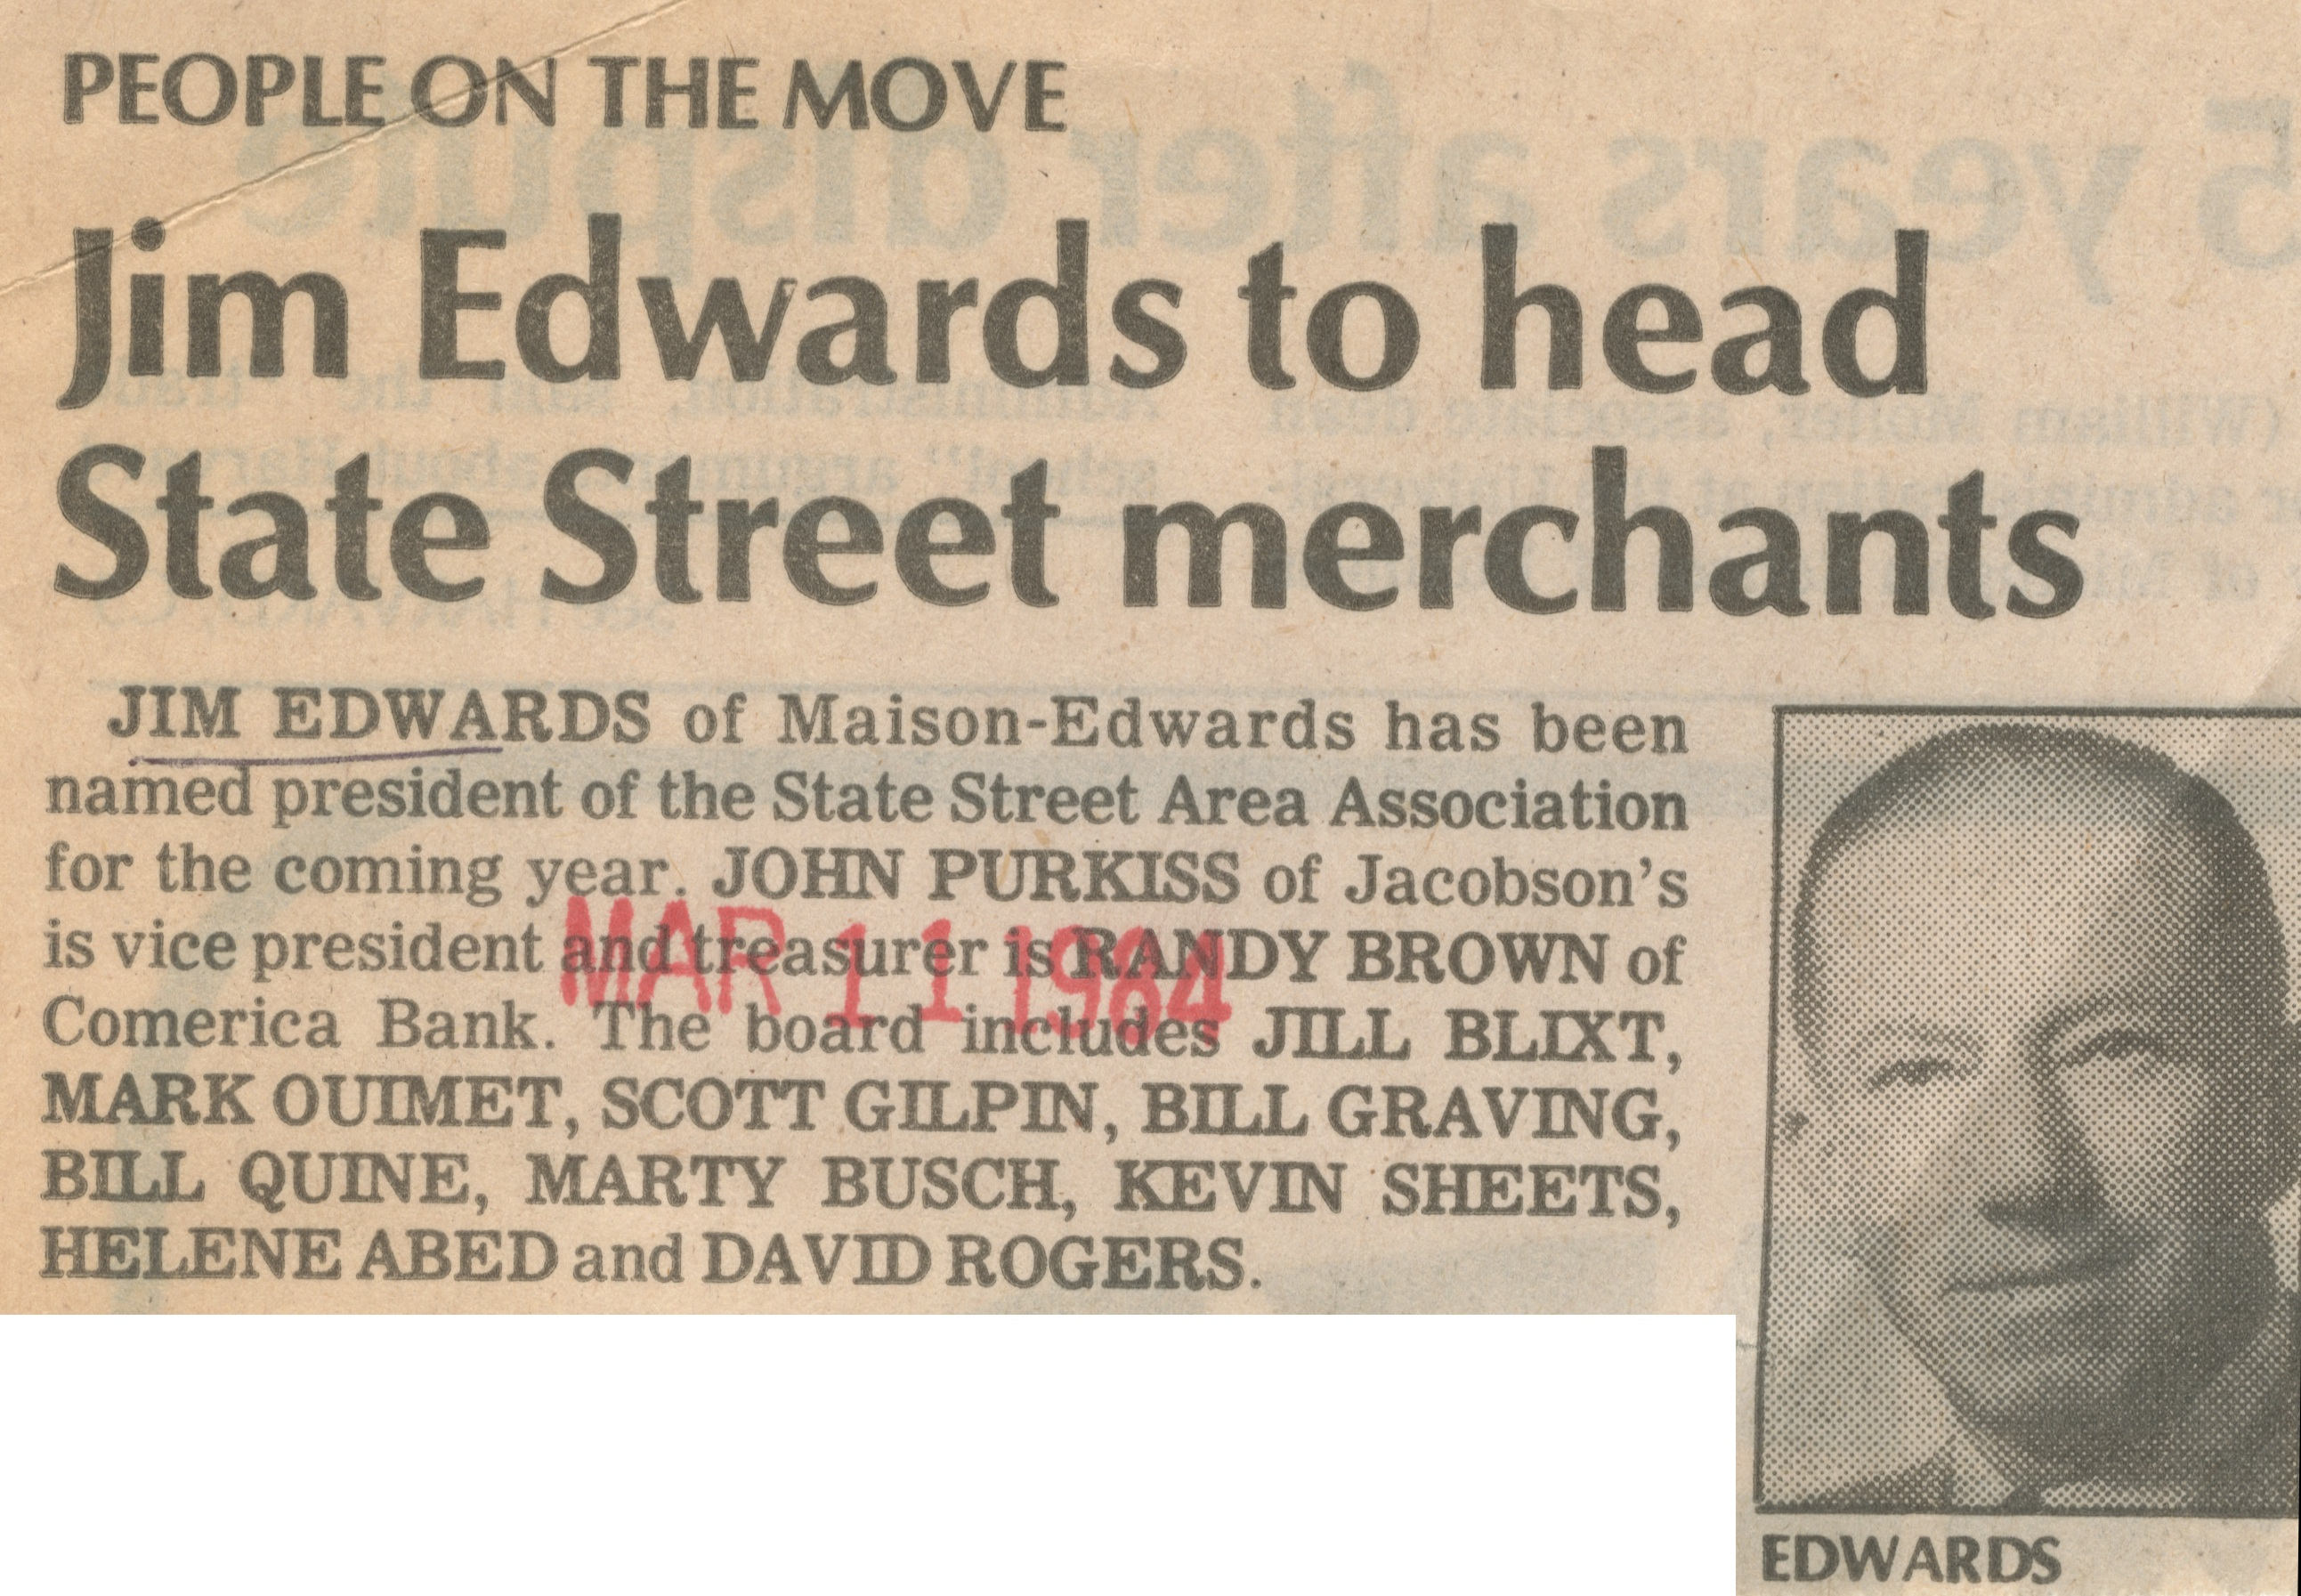 Jim Edwards to head State Street merchants image